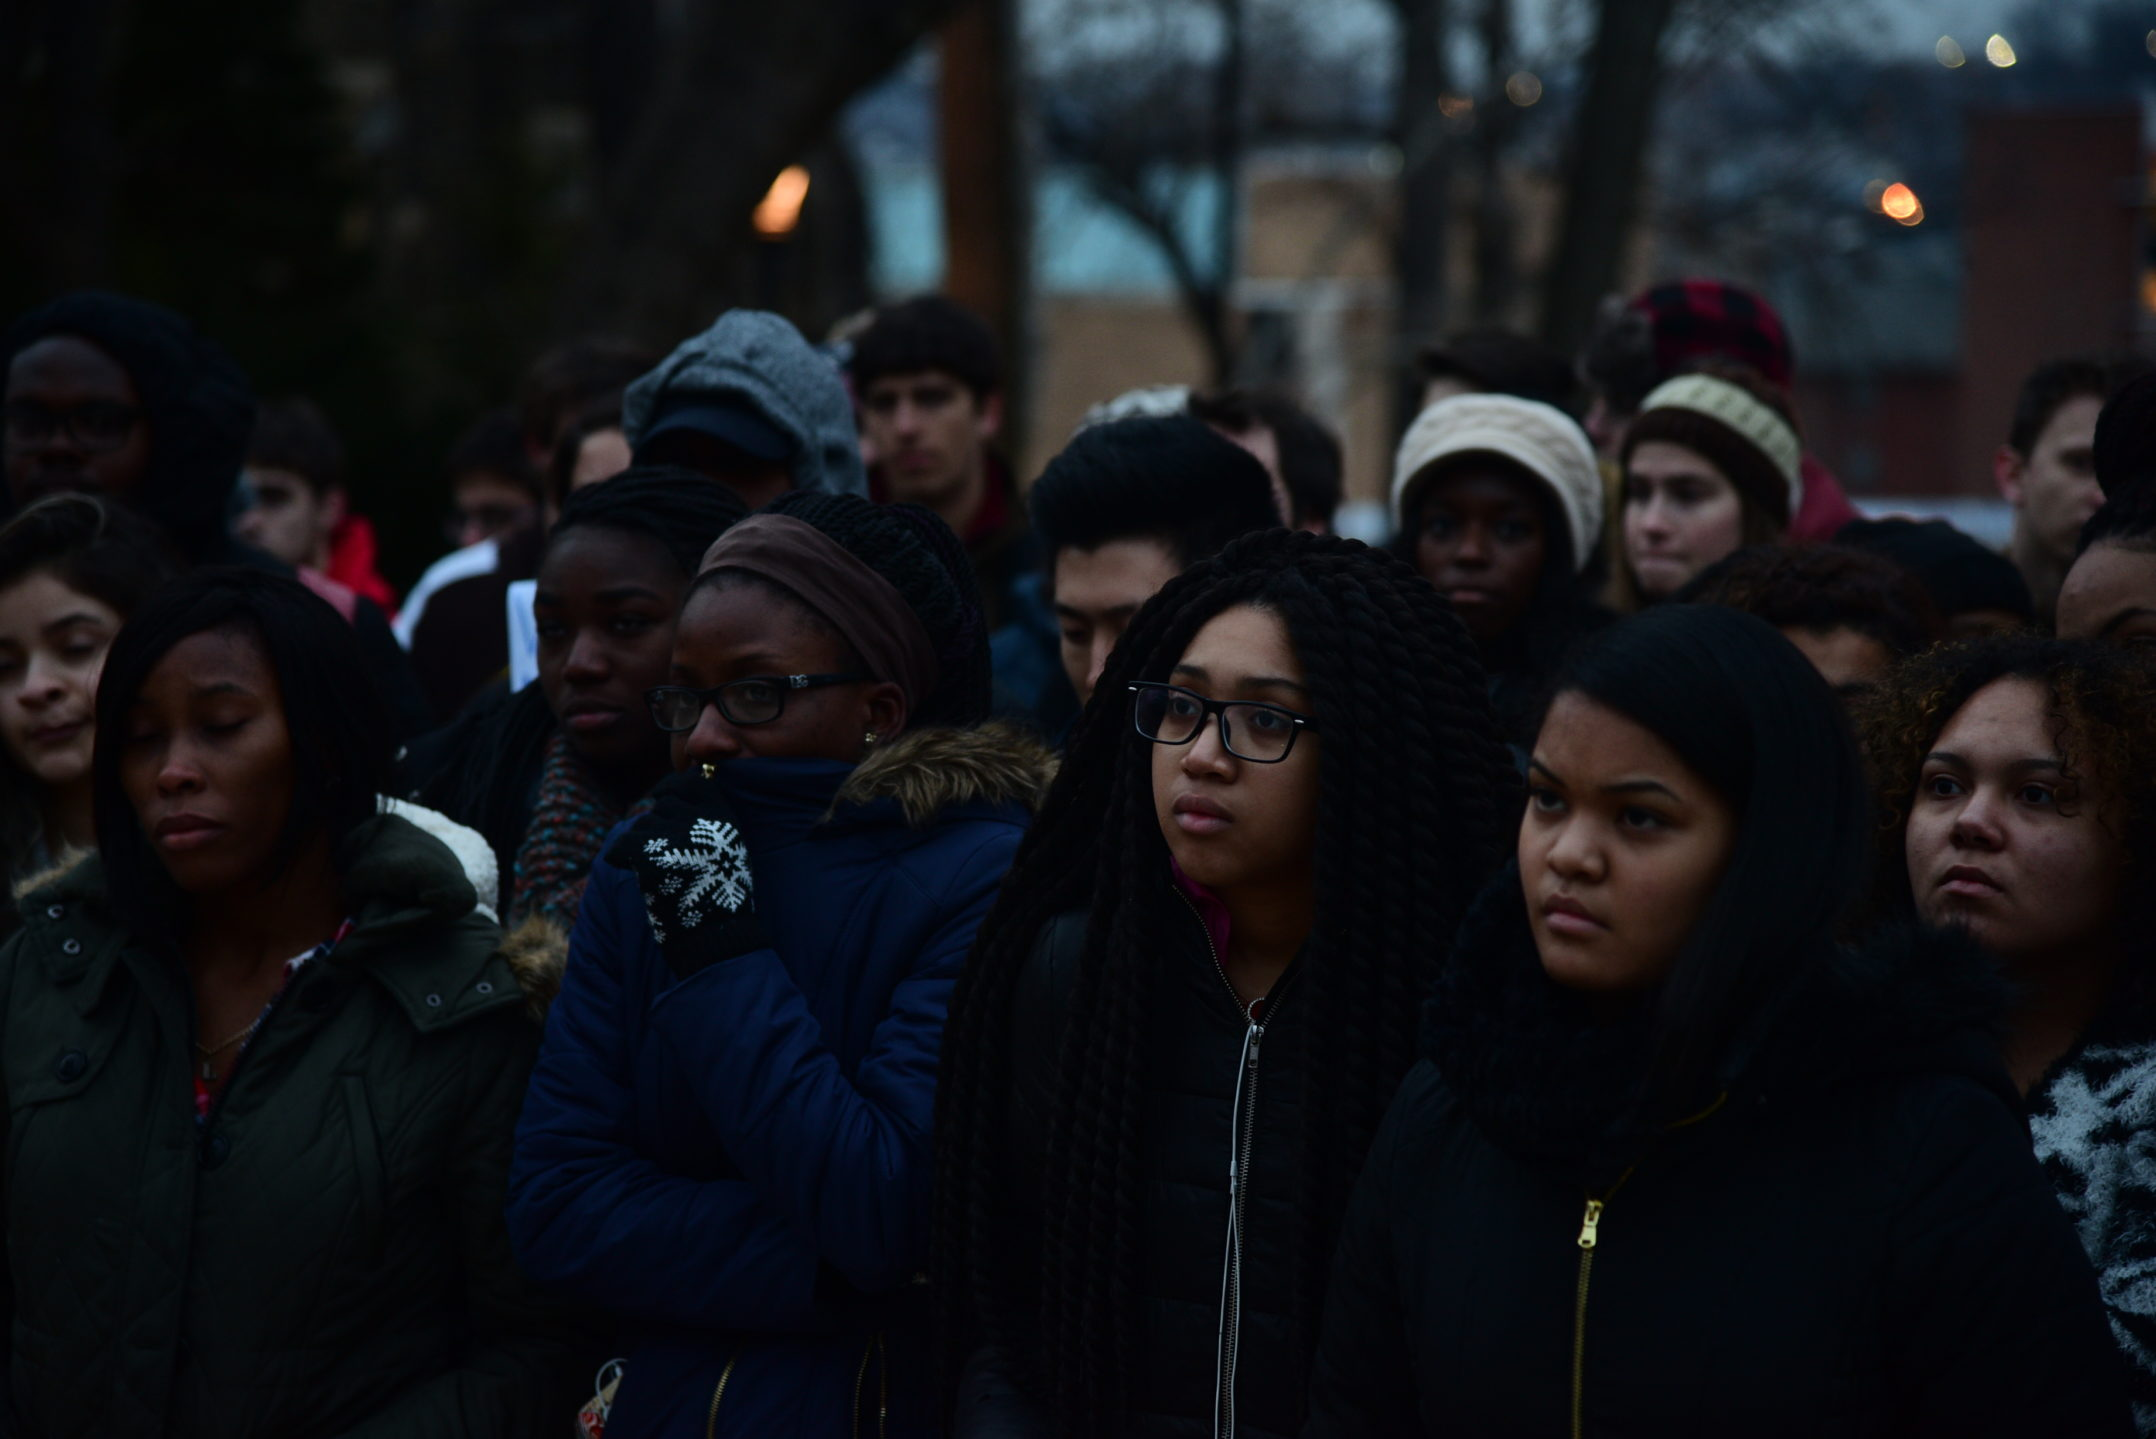 Lounie Germain, '20,  Kezia Ofosu-Oware, '20, Shanice Merteens, '20, Gaby Montes, '20, stand in silence at the rally. The four listen to David Kroll speak. (Ashley Omoma/B&W Staff)